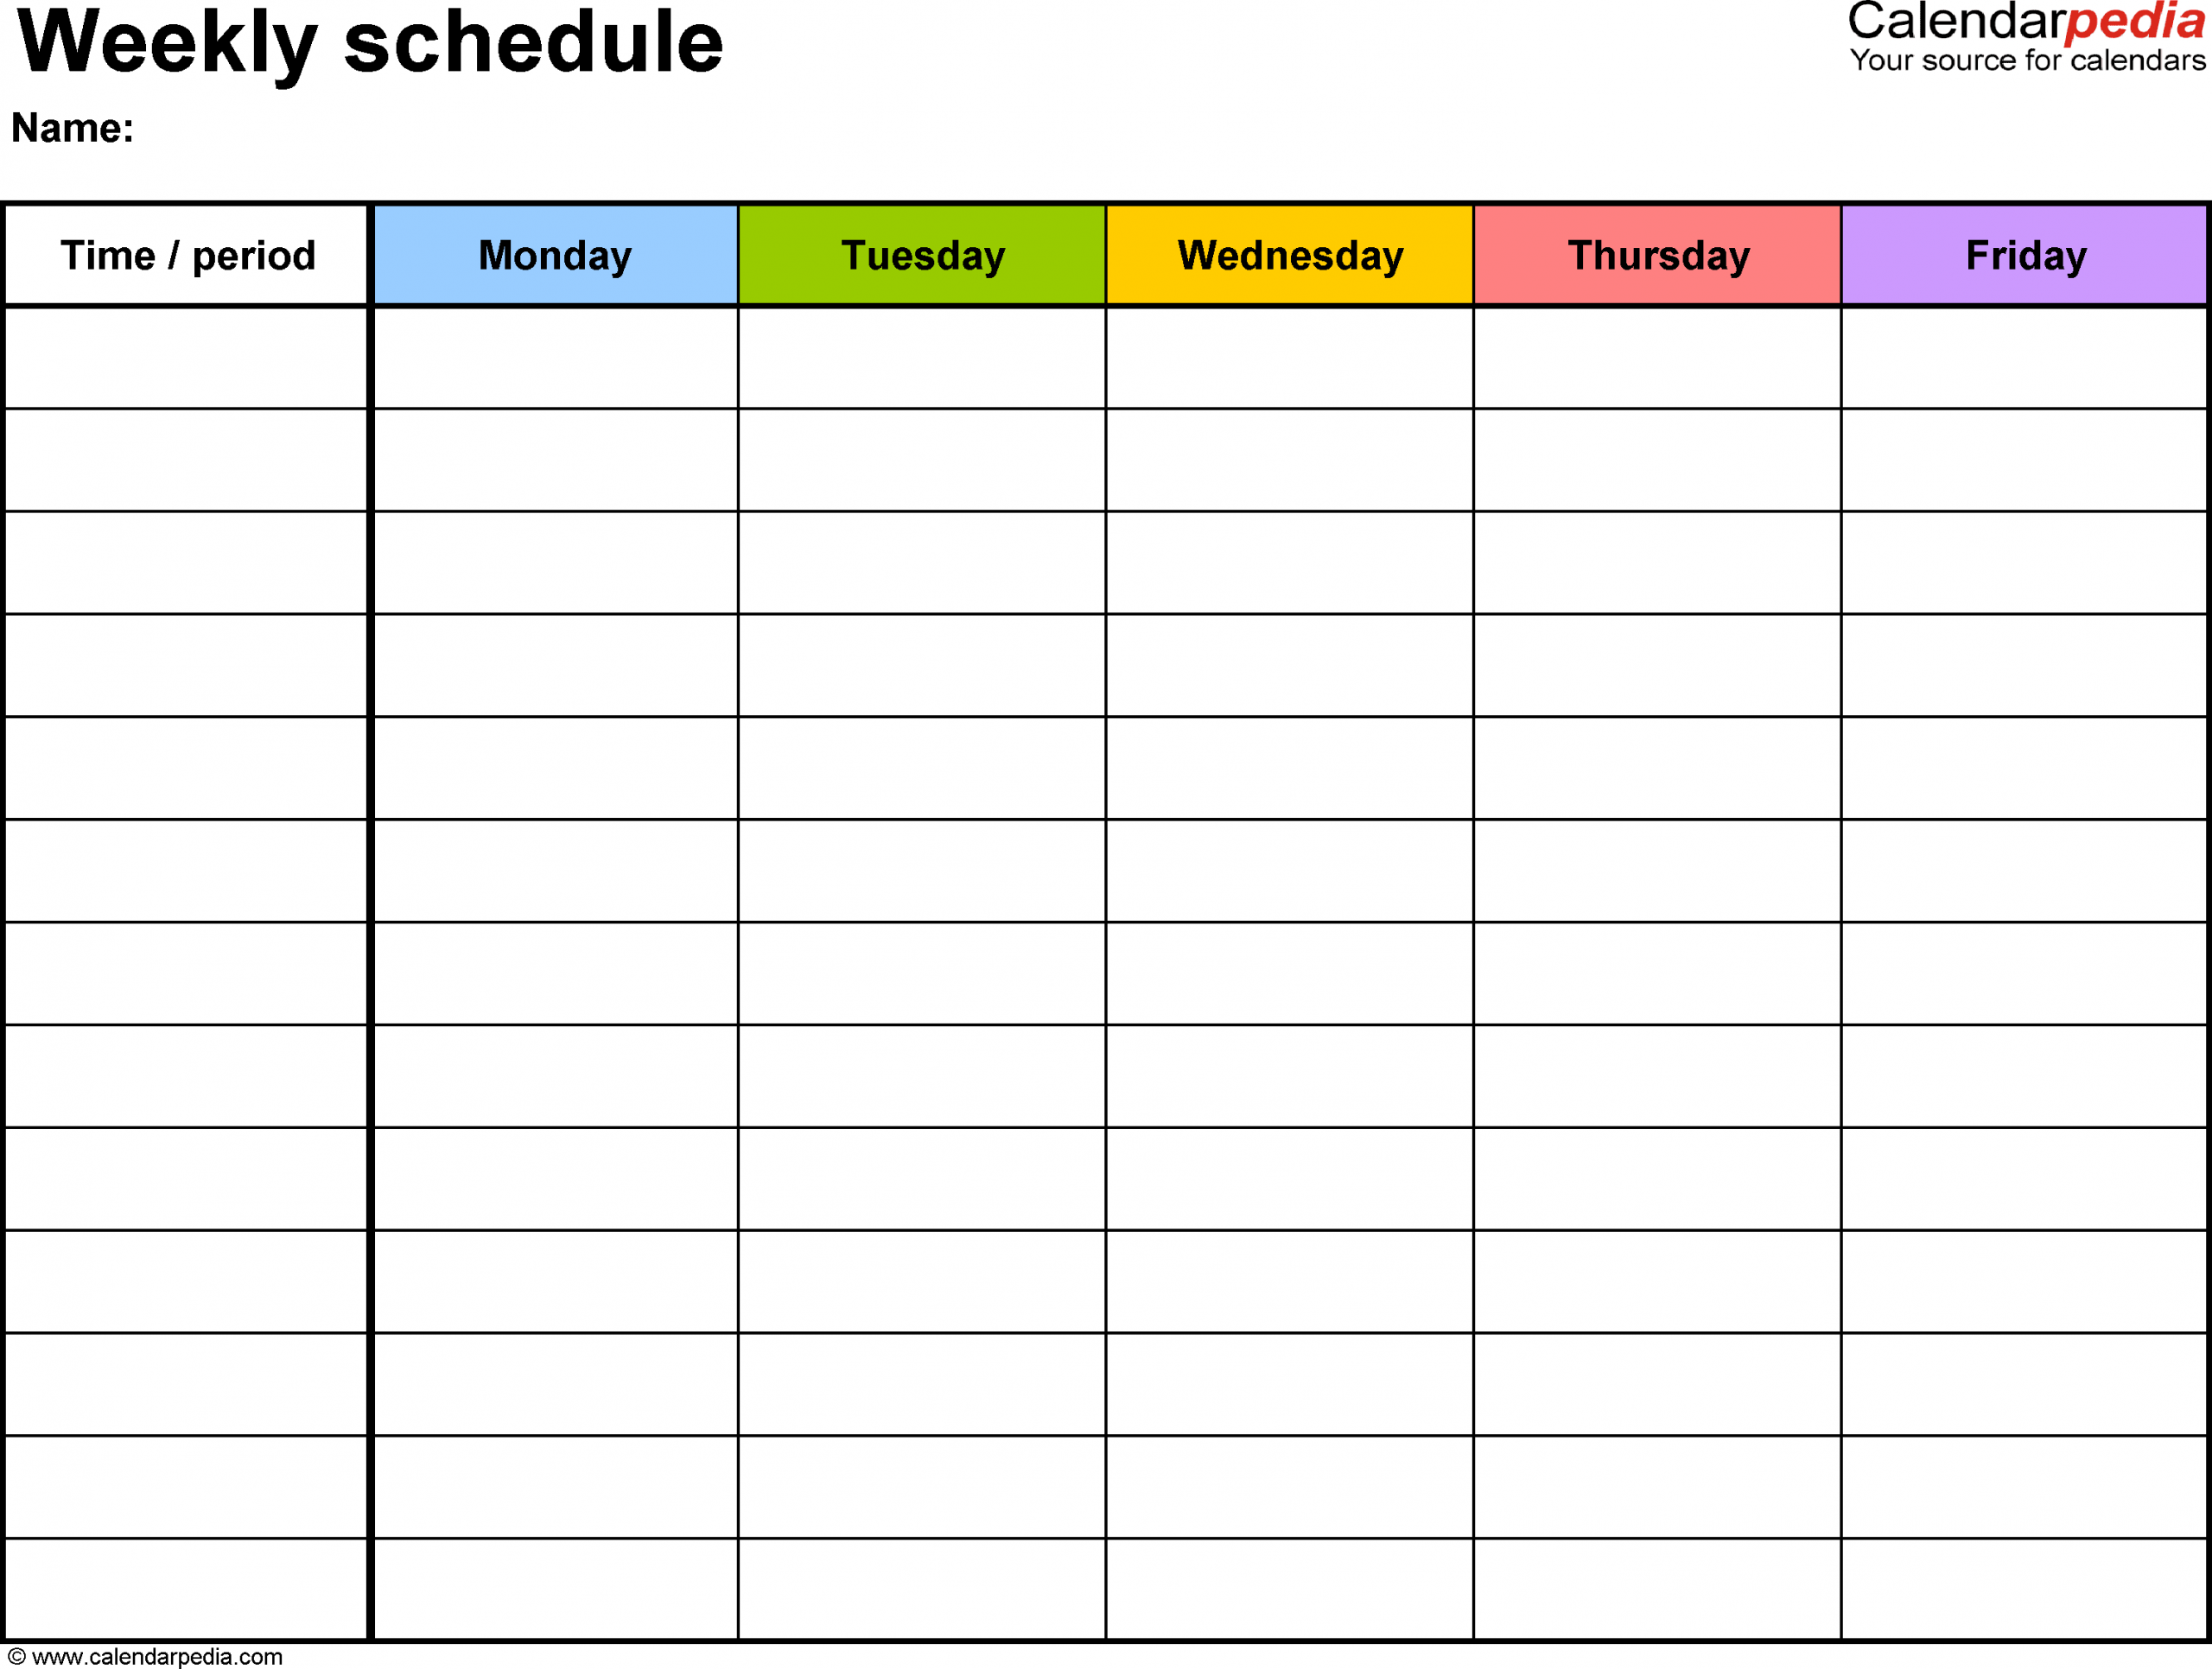 Weekly Schedule Template For Word Version 1: Landscape, 1 Saturday Thur Friday Schedule